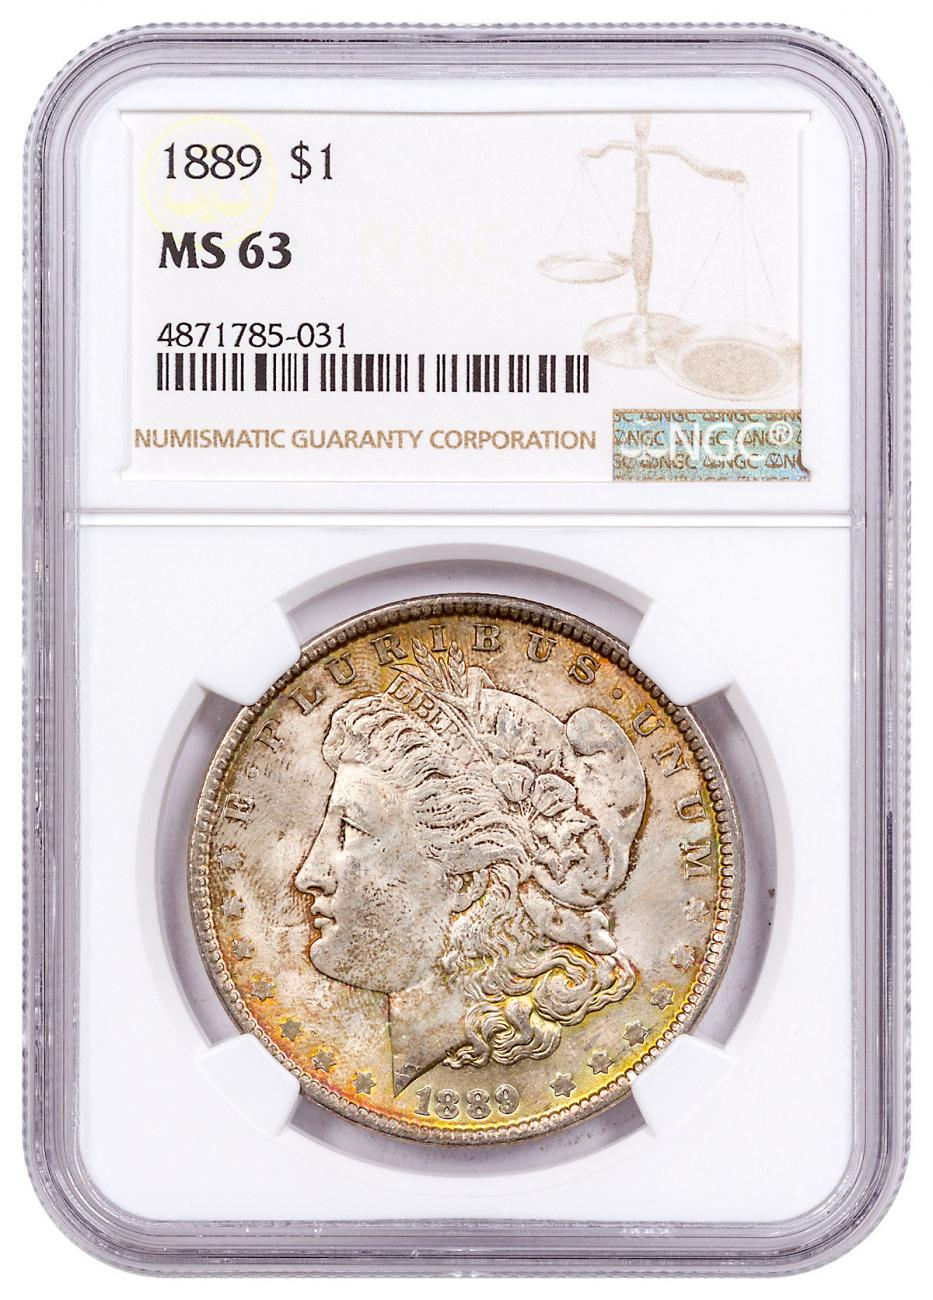 1889 Morgan Silver Dollar Toned NGC MS63 CPCR 5031